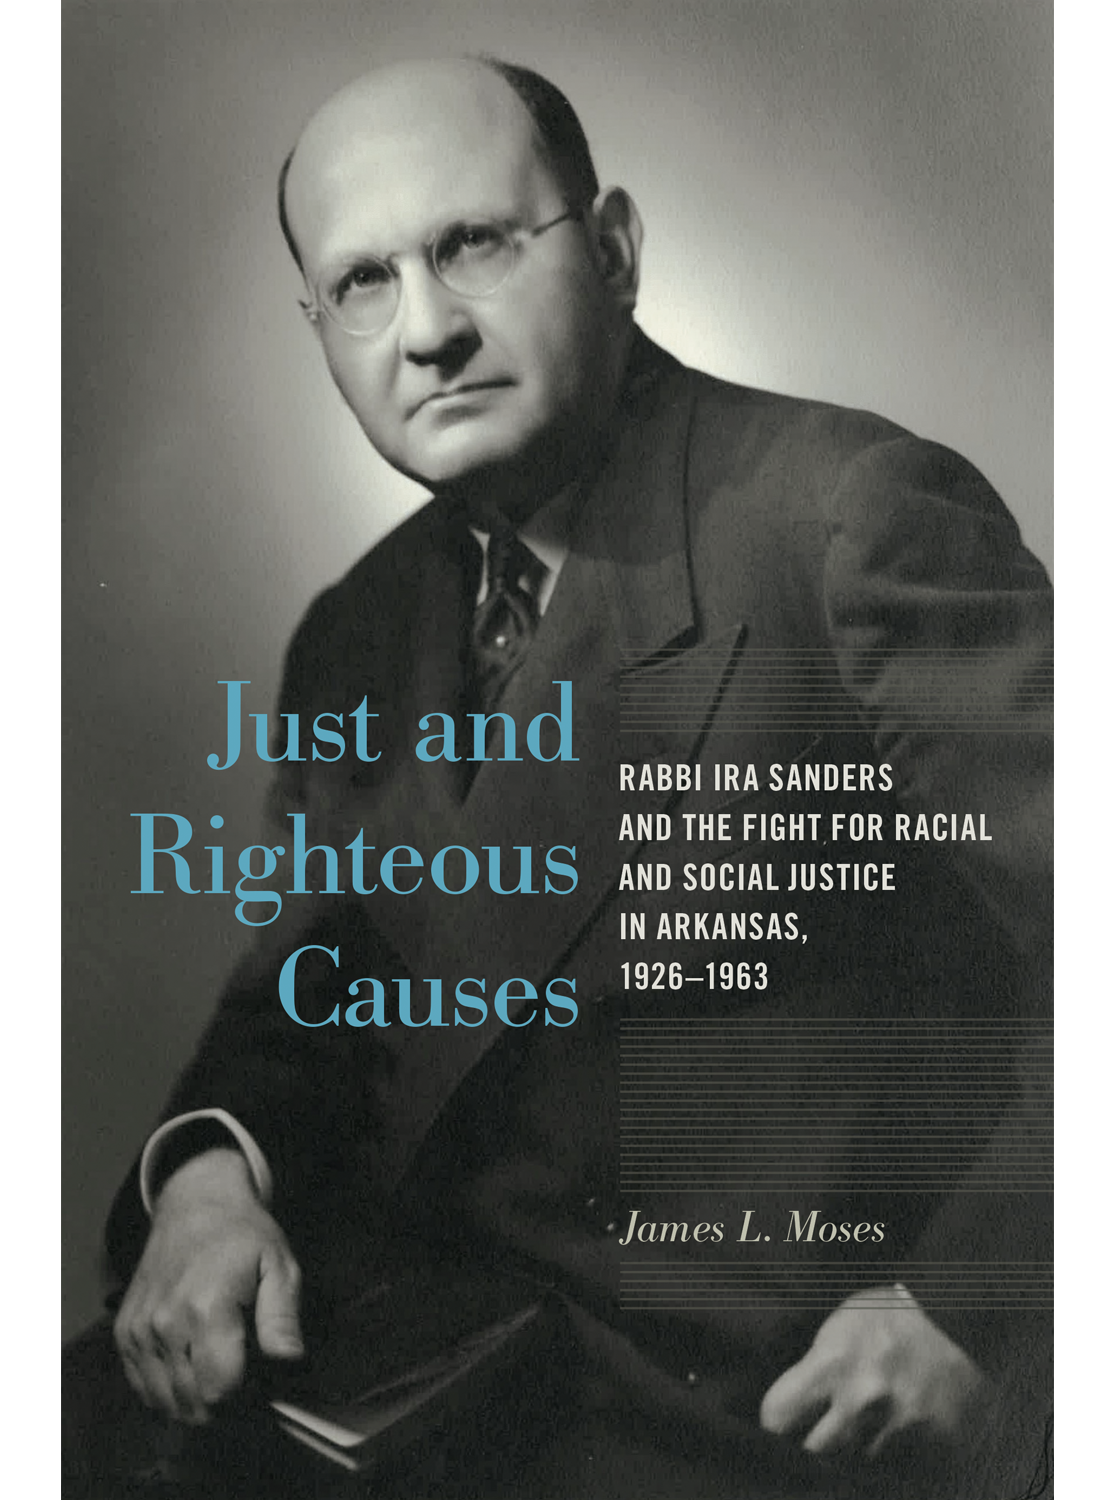 Just and Righteous Causes: Rabbi Ira Sanders and the Fight for Racial and Social Justice in Arkansas, 1926-1963